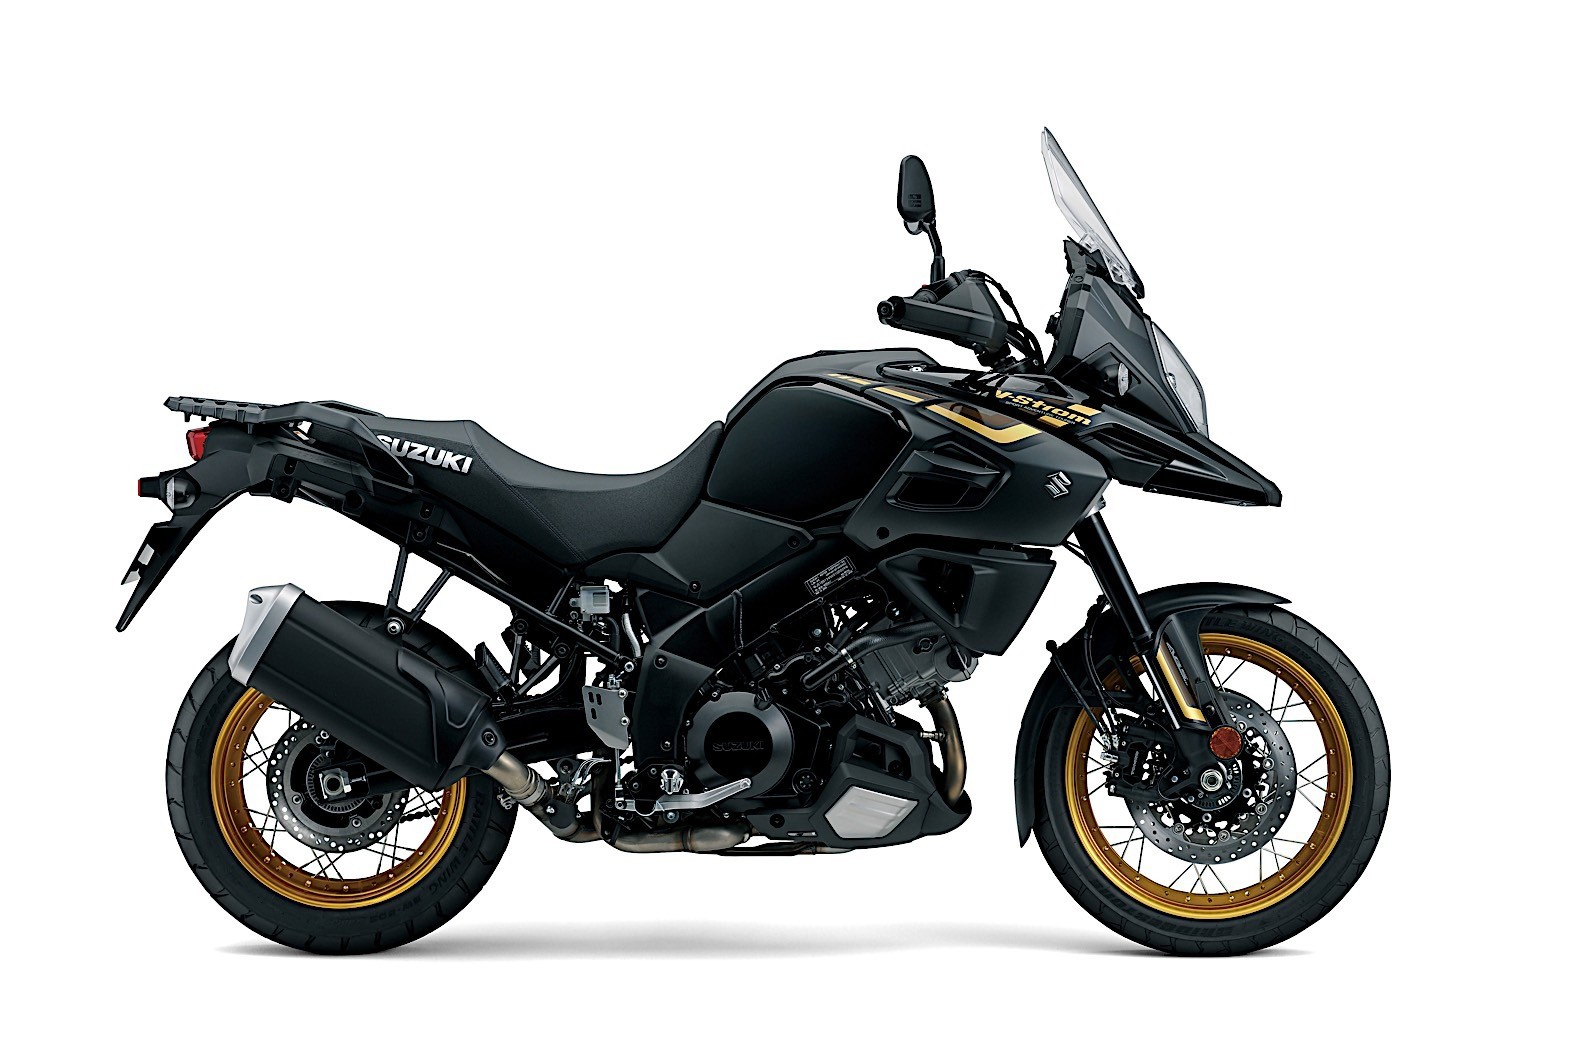 2019-suzuki-motorcycles-shine-in-new-colors-at-the-motorcycle-live-12